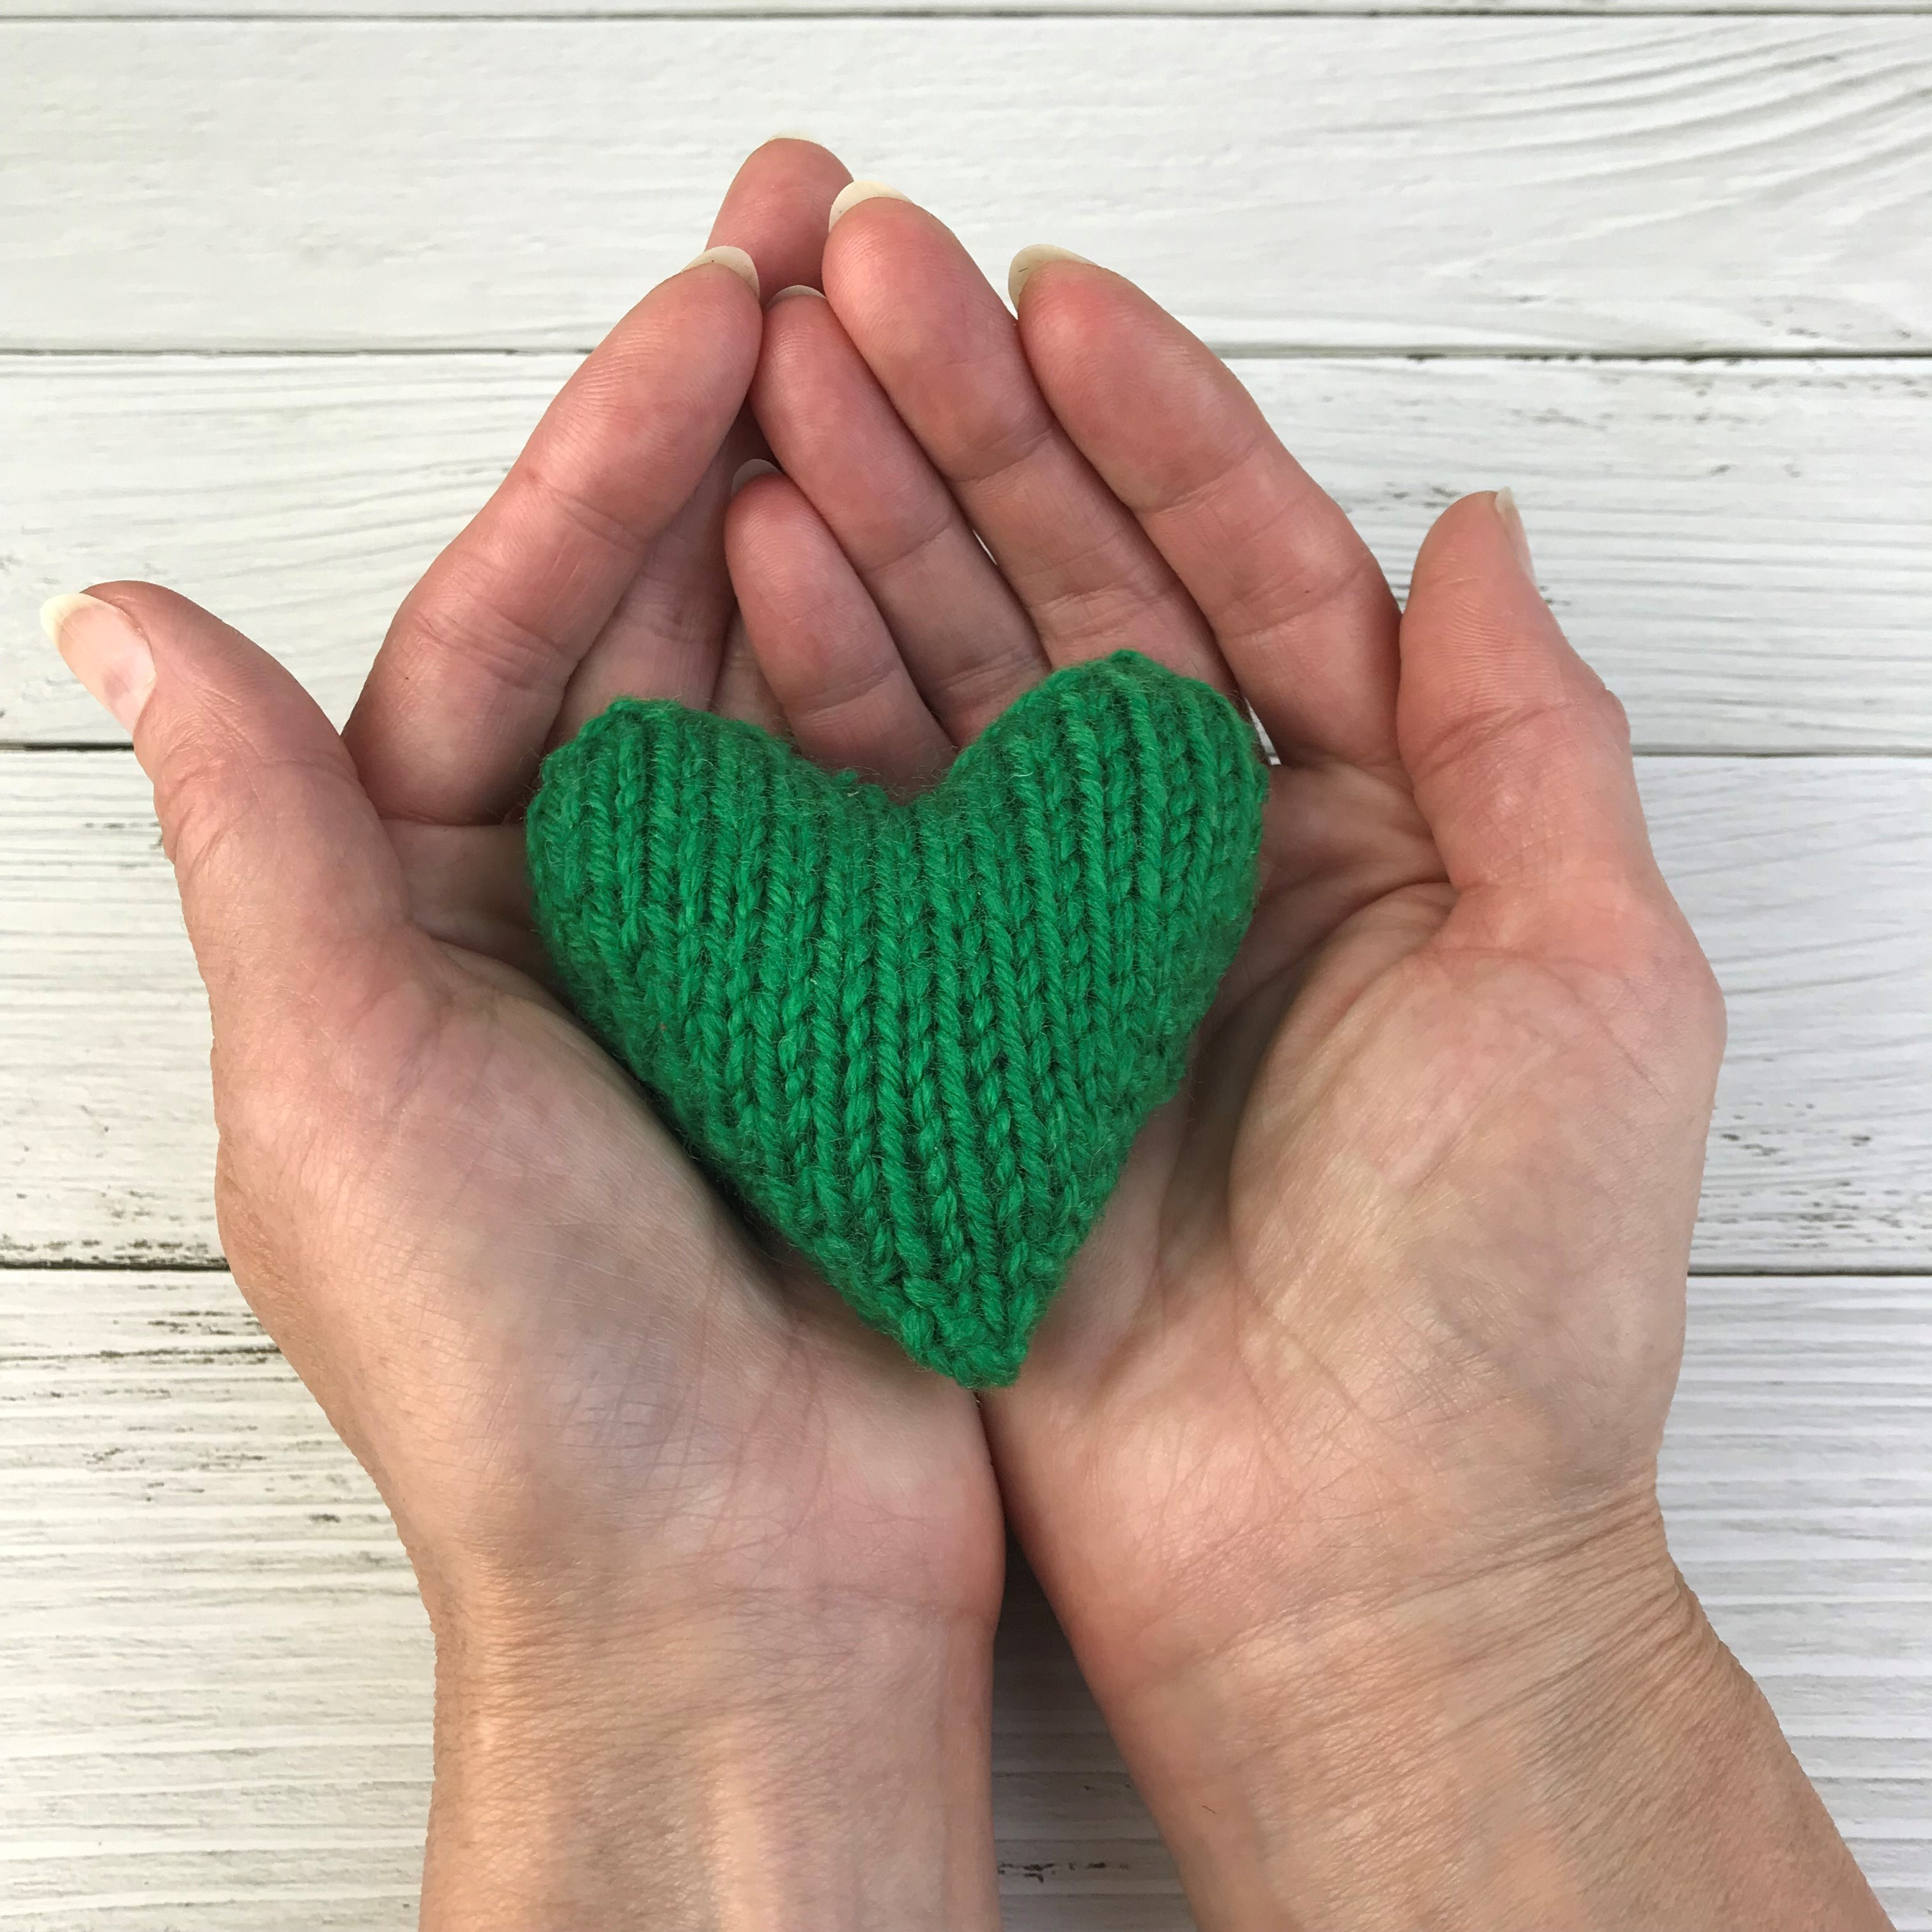 Little Green Hearts for Childline - NSPCC